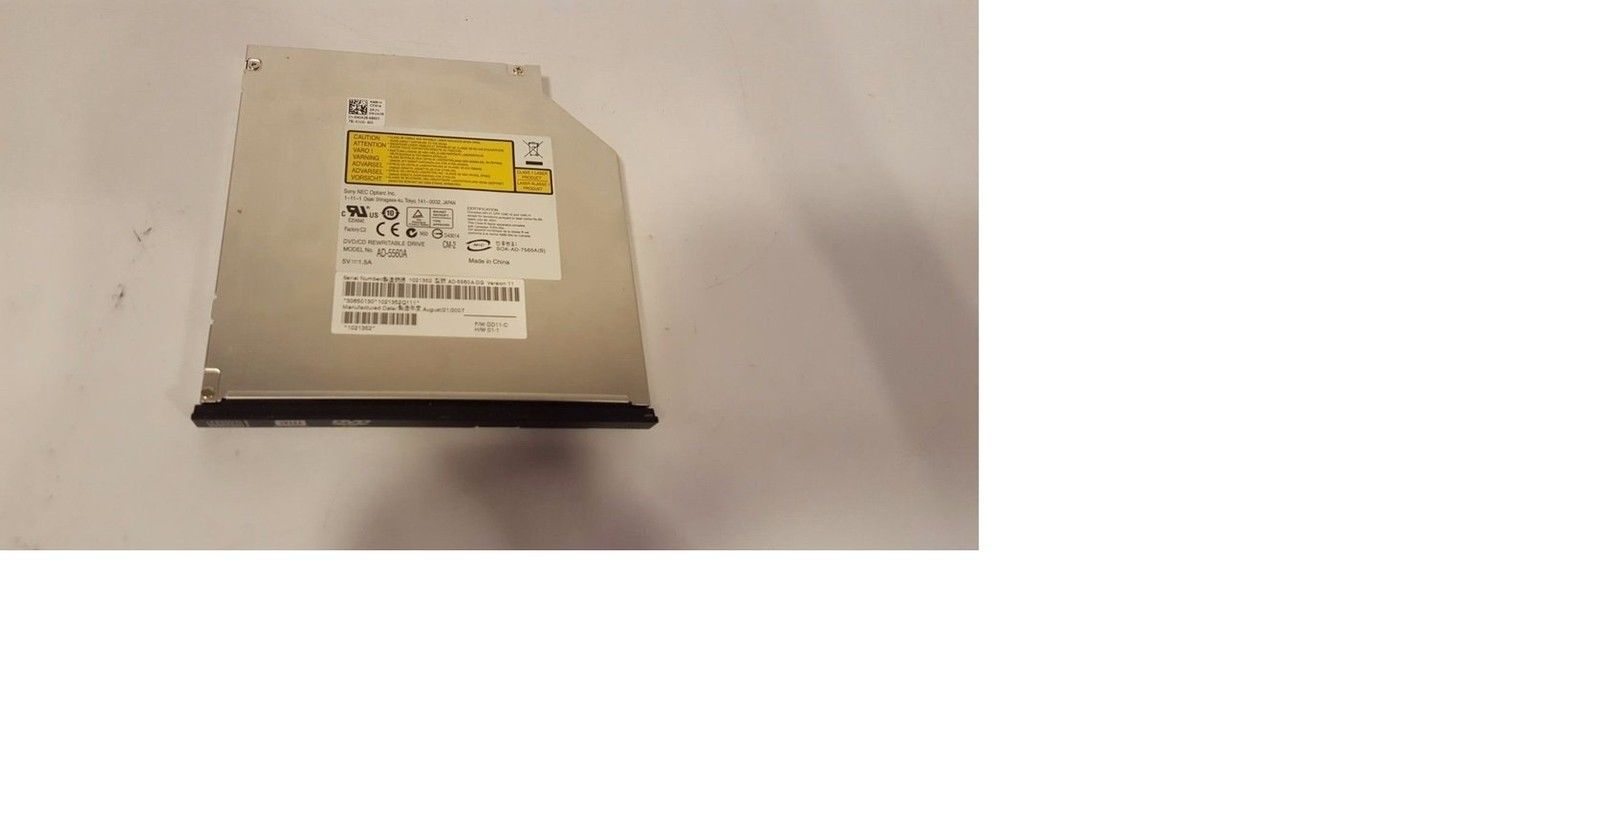 OPTIARC AD 5560A DRIVER FOR WINDOWS DOWNLOAD